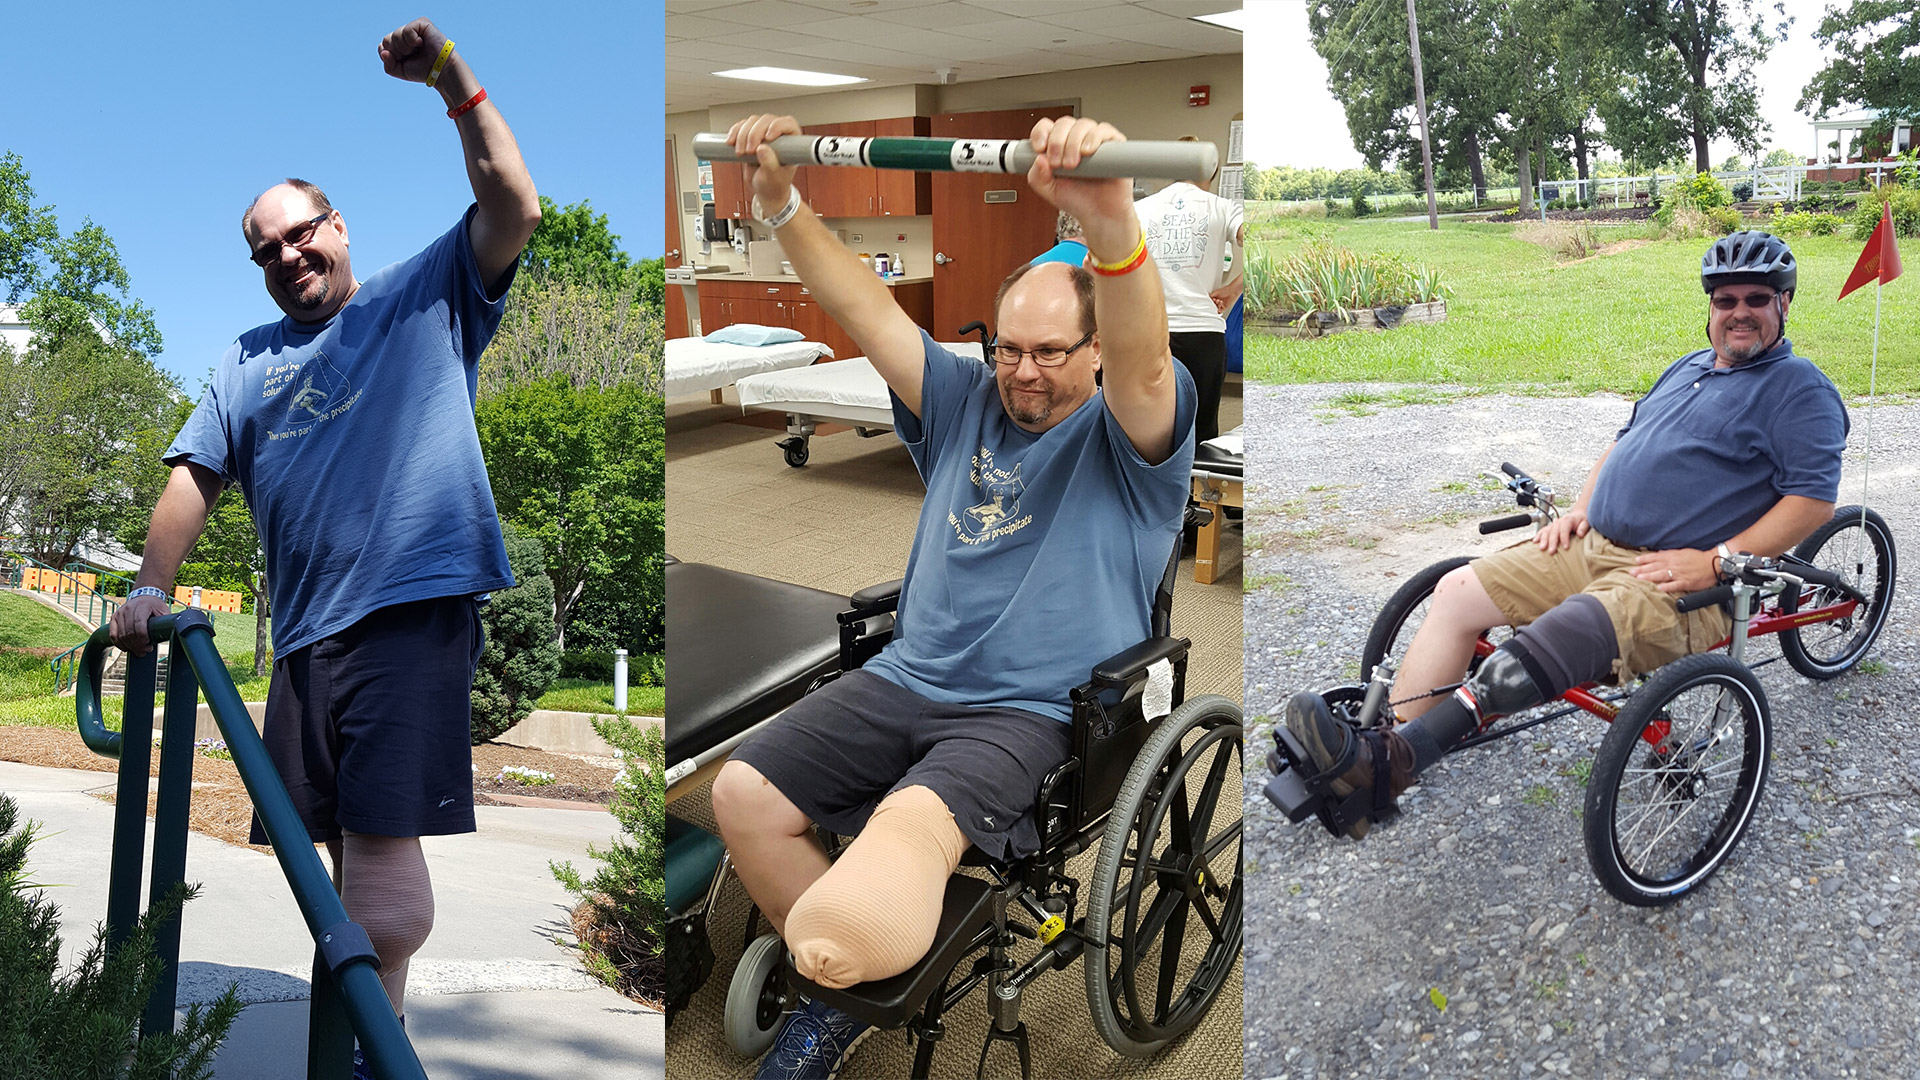 Two years ago, Bruce Bridges lost his leg to osteosarcoma. But after a successful stint at Atrium Health's Carolinas Rehabilitation, this motivated 7th grade science teacher is taking part in 24 Hours of Booty to inspire others battling cancer.